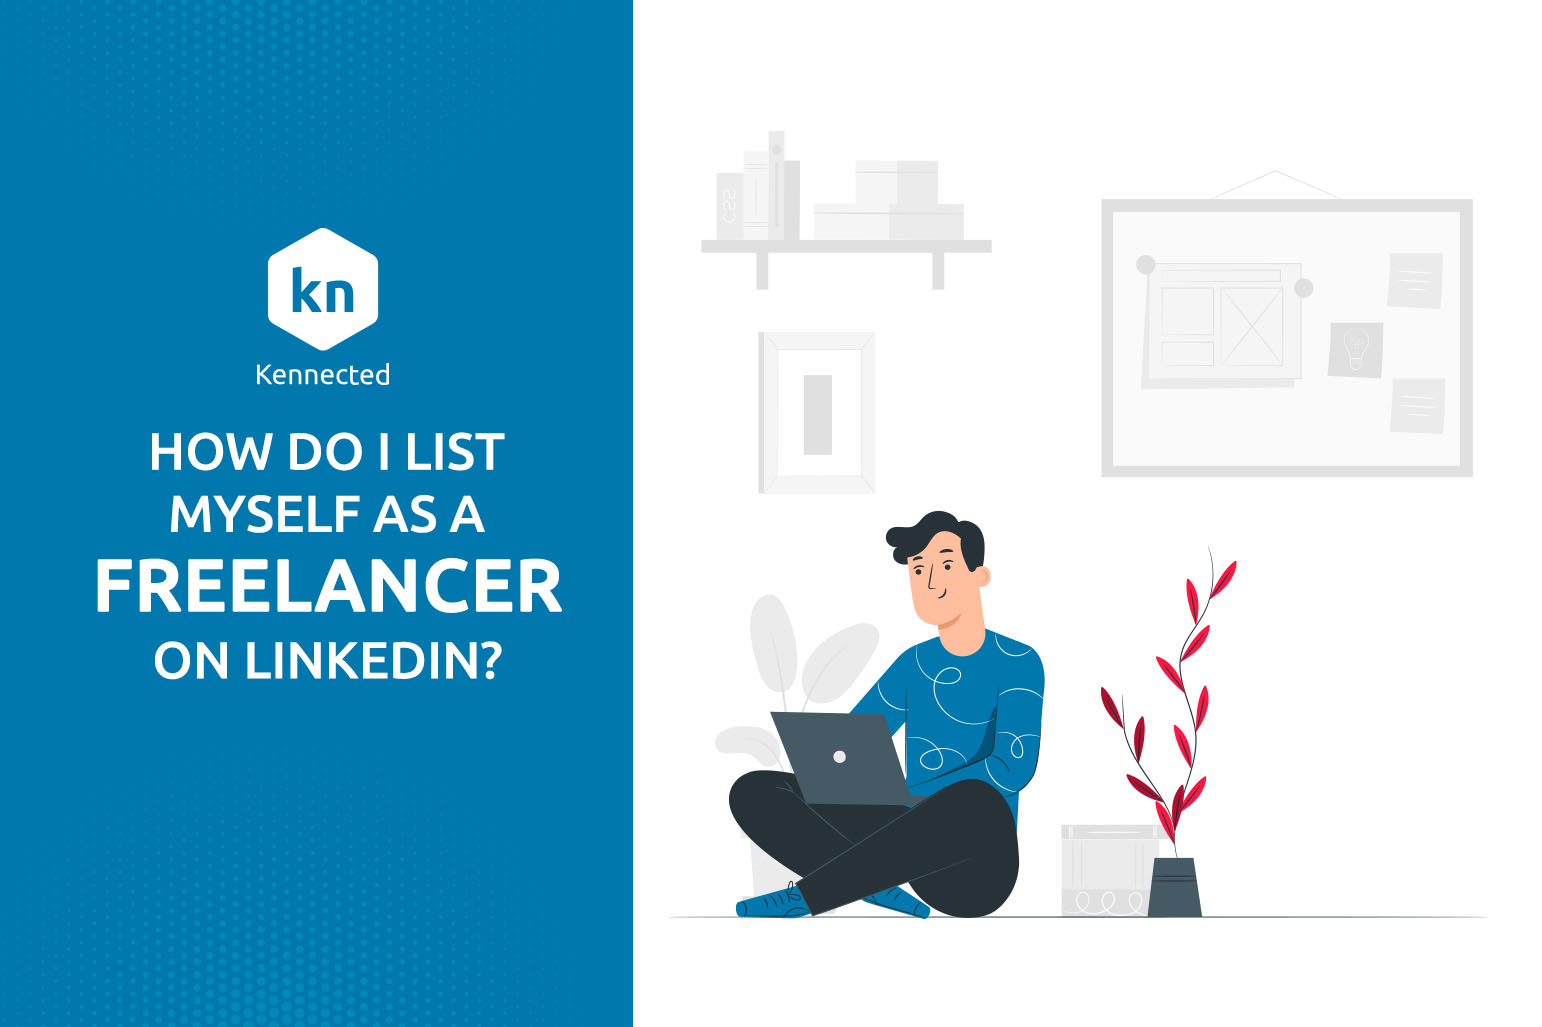 How Do I List Myself As A Freelancer On LinkedIn?